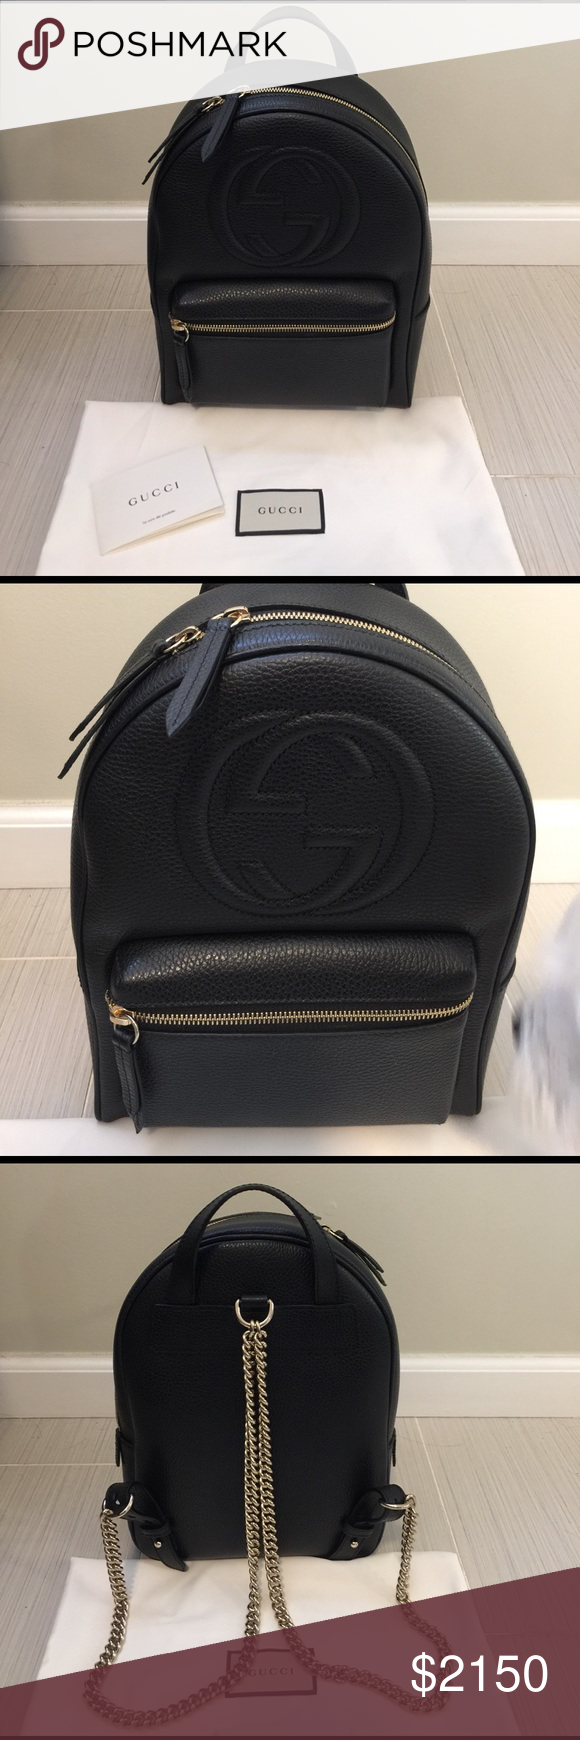 18923e91075 Gucci Soho leather chain backpack Gold toned hardware Black leather  Embossed interlocking G Cotton lining Top handle with 2